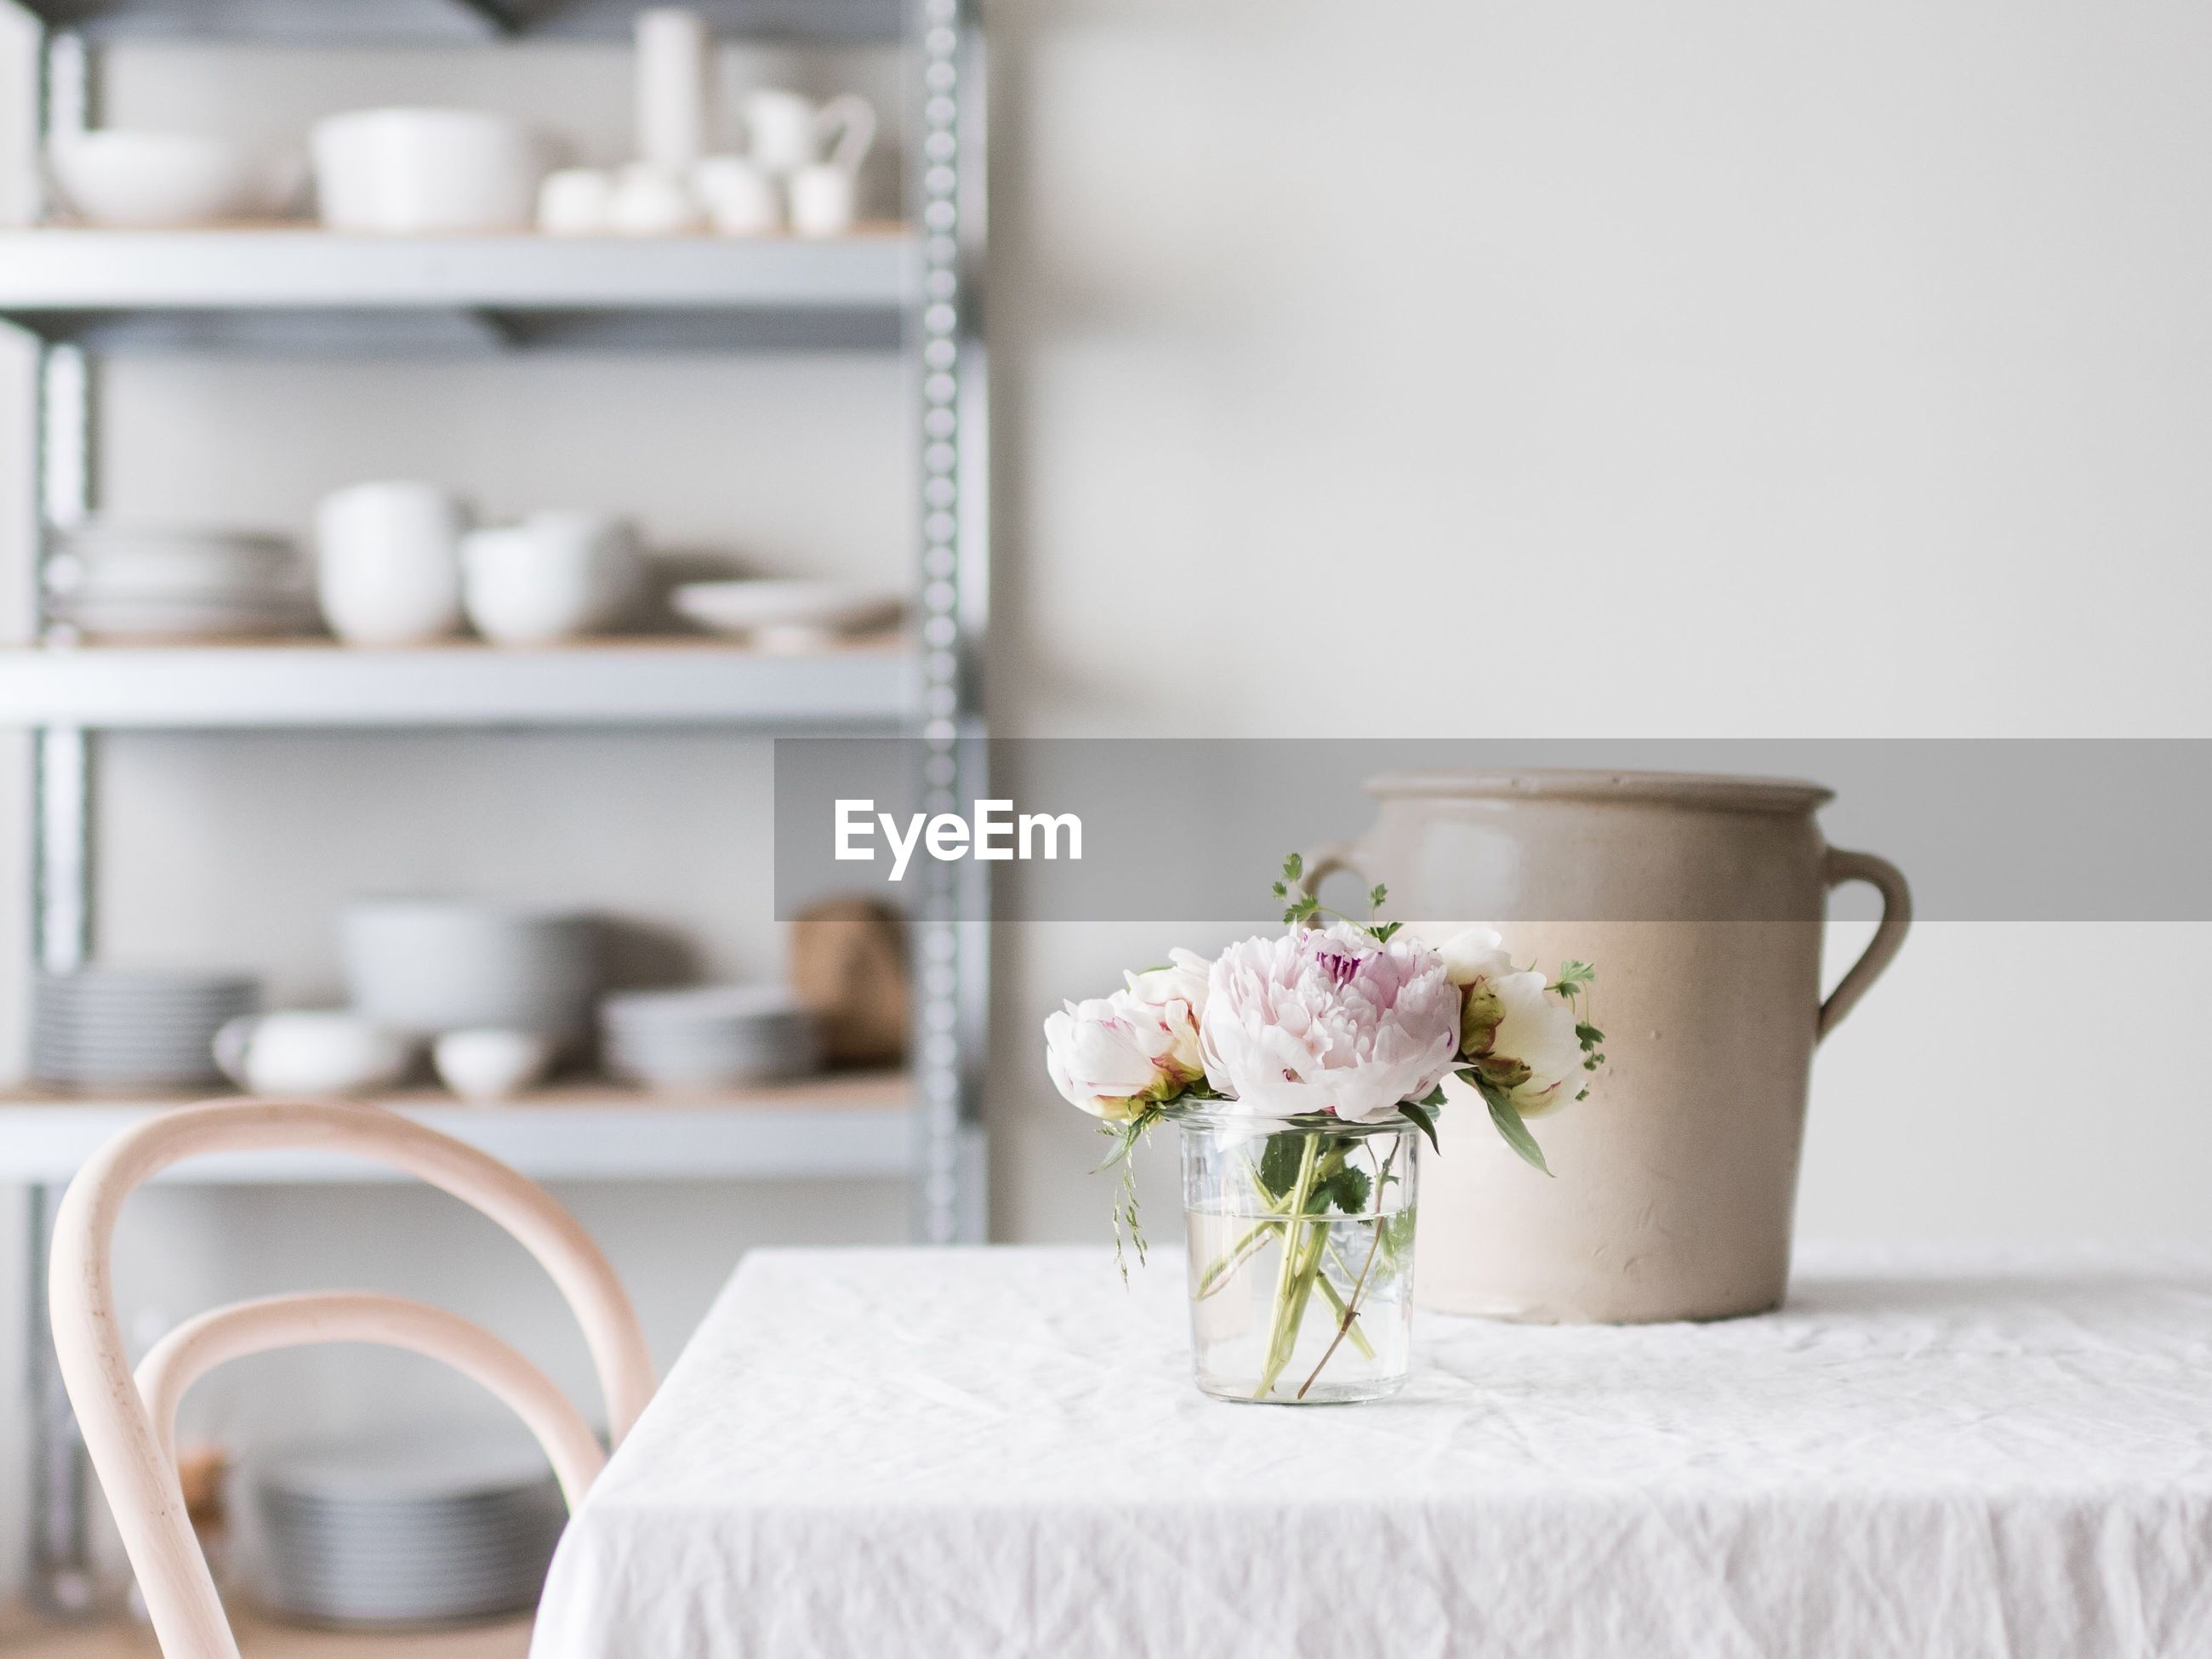 Flowers in container on table